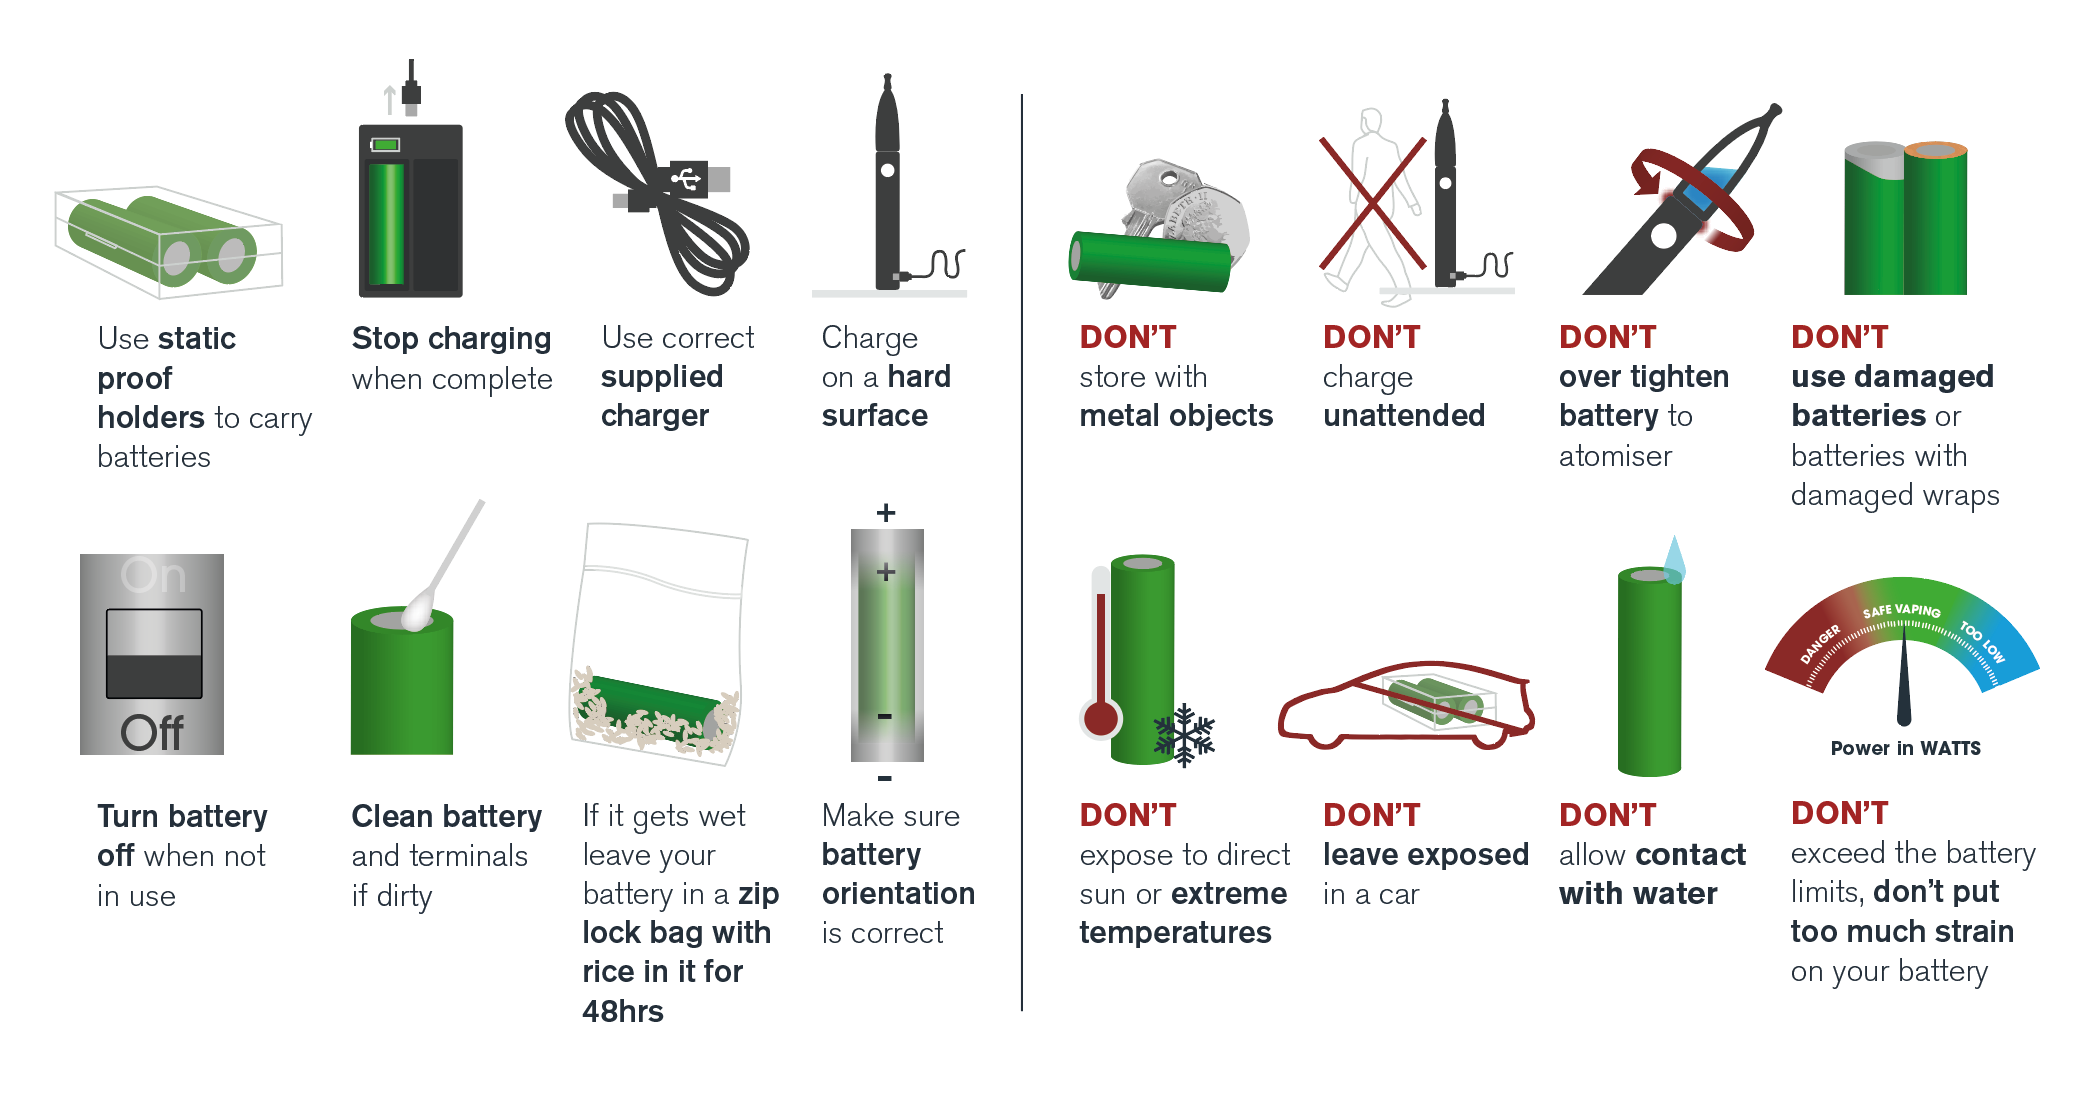 Battery dos and don'ts